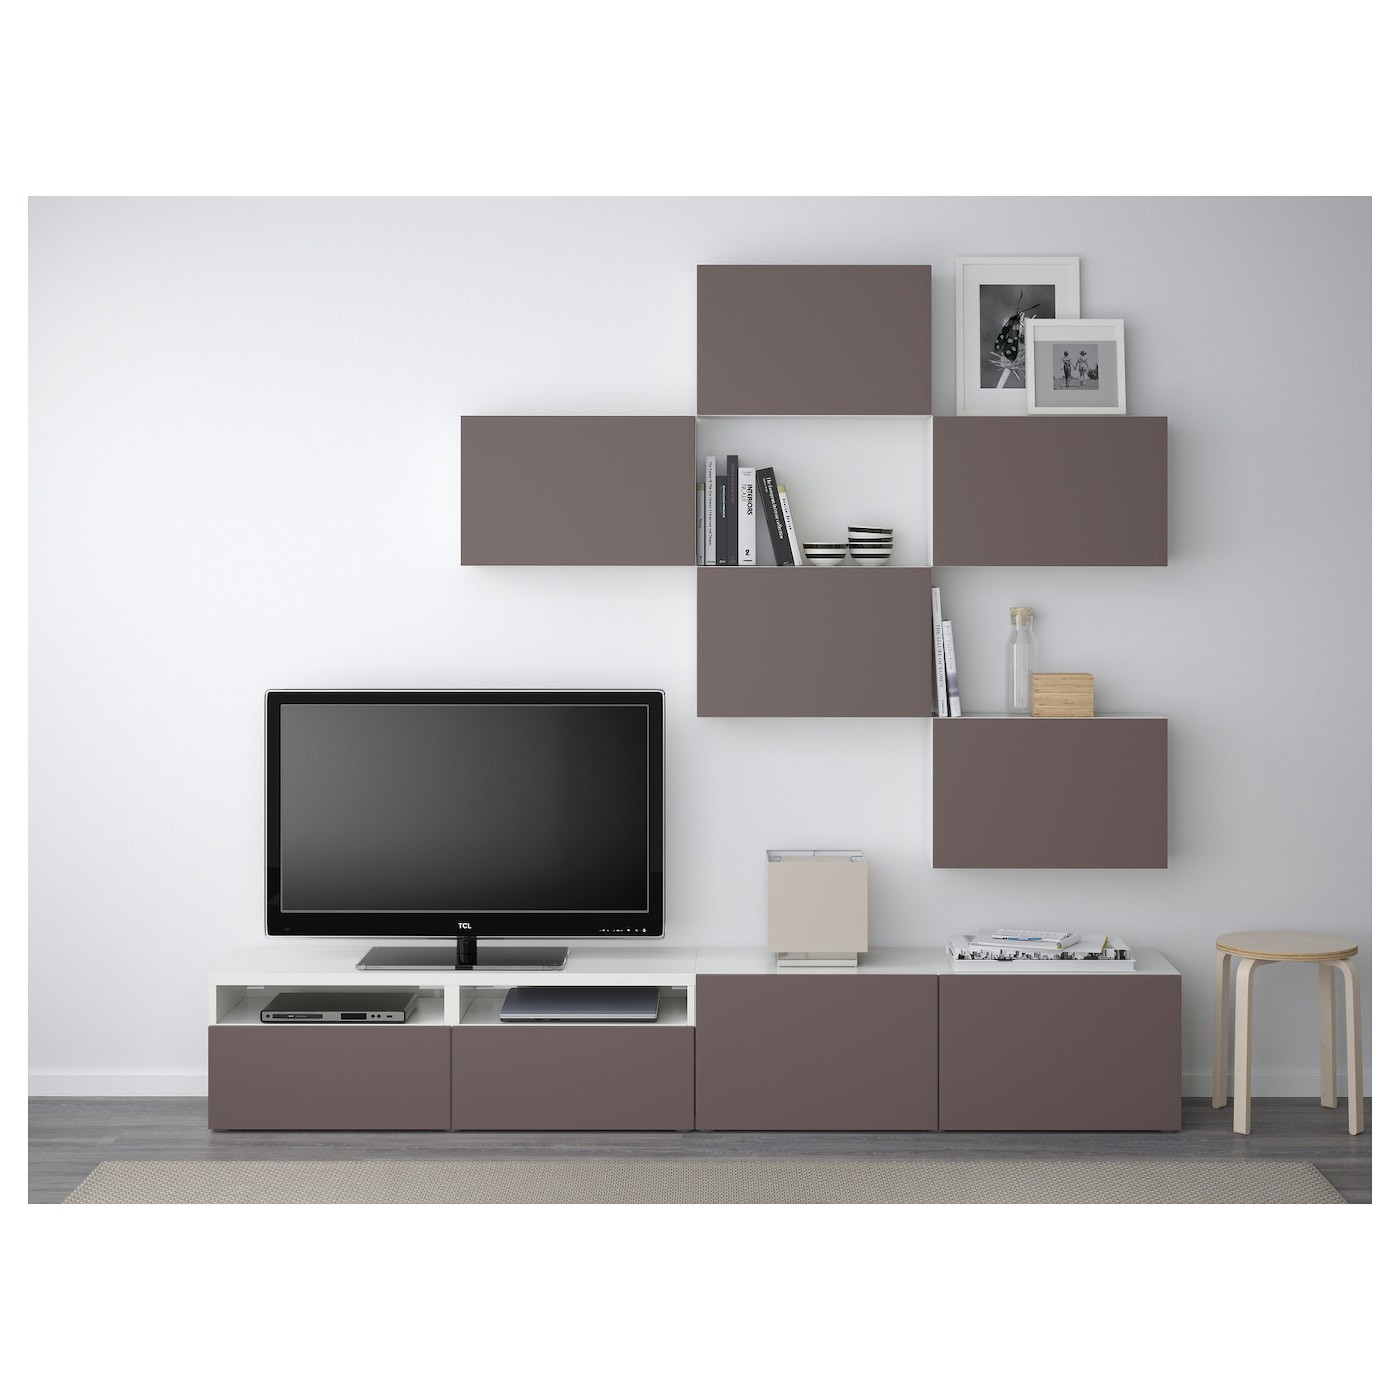 Best Tv Storage Combination White Valviken Dark Brown 240×20  # Meuble Tv Ikea Gris